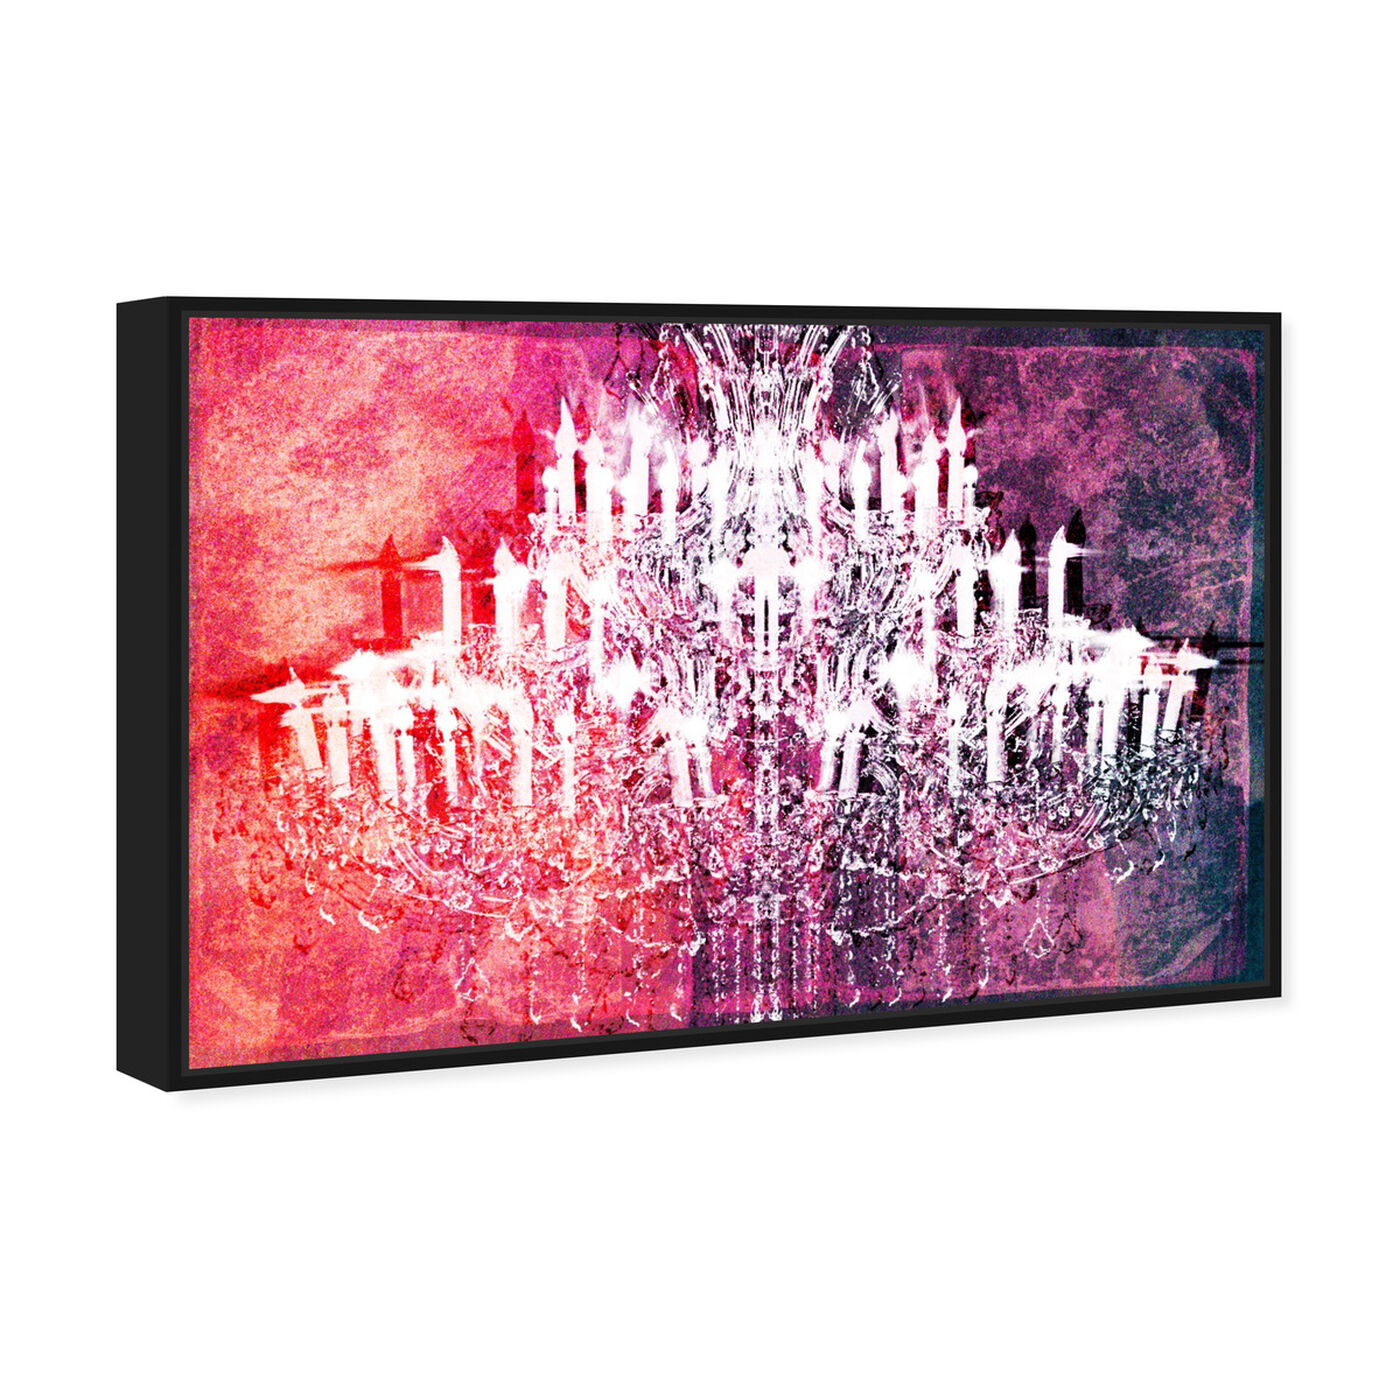 Angled view of Ethereal Vision Reversed featuring fashion and glam and chandeliers art.